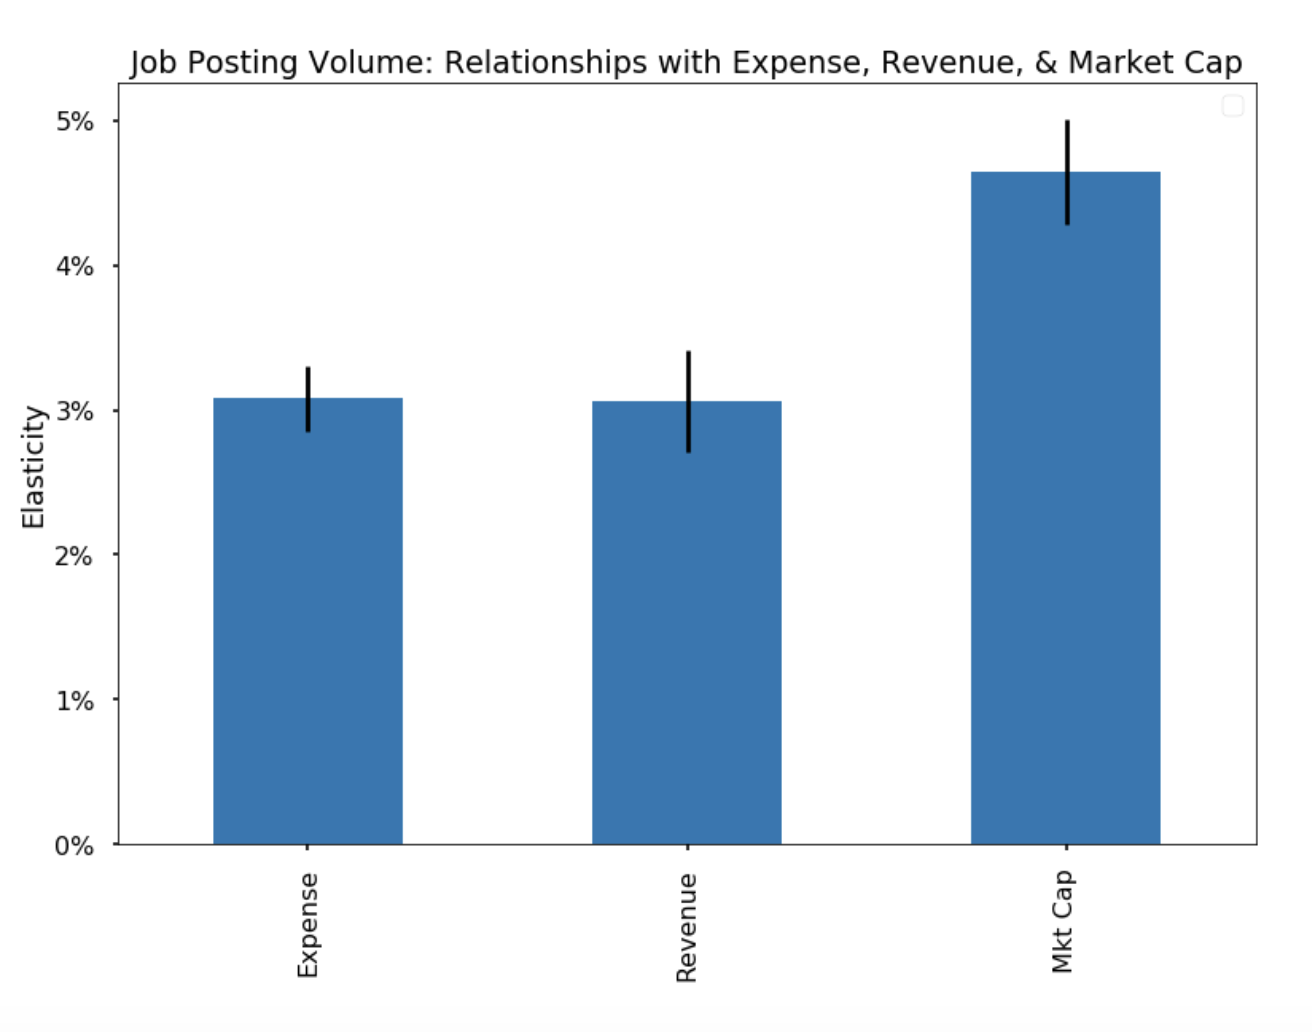 Chart 1: The elasticity of job posting volume within companies to three fundamental variables